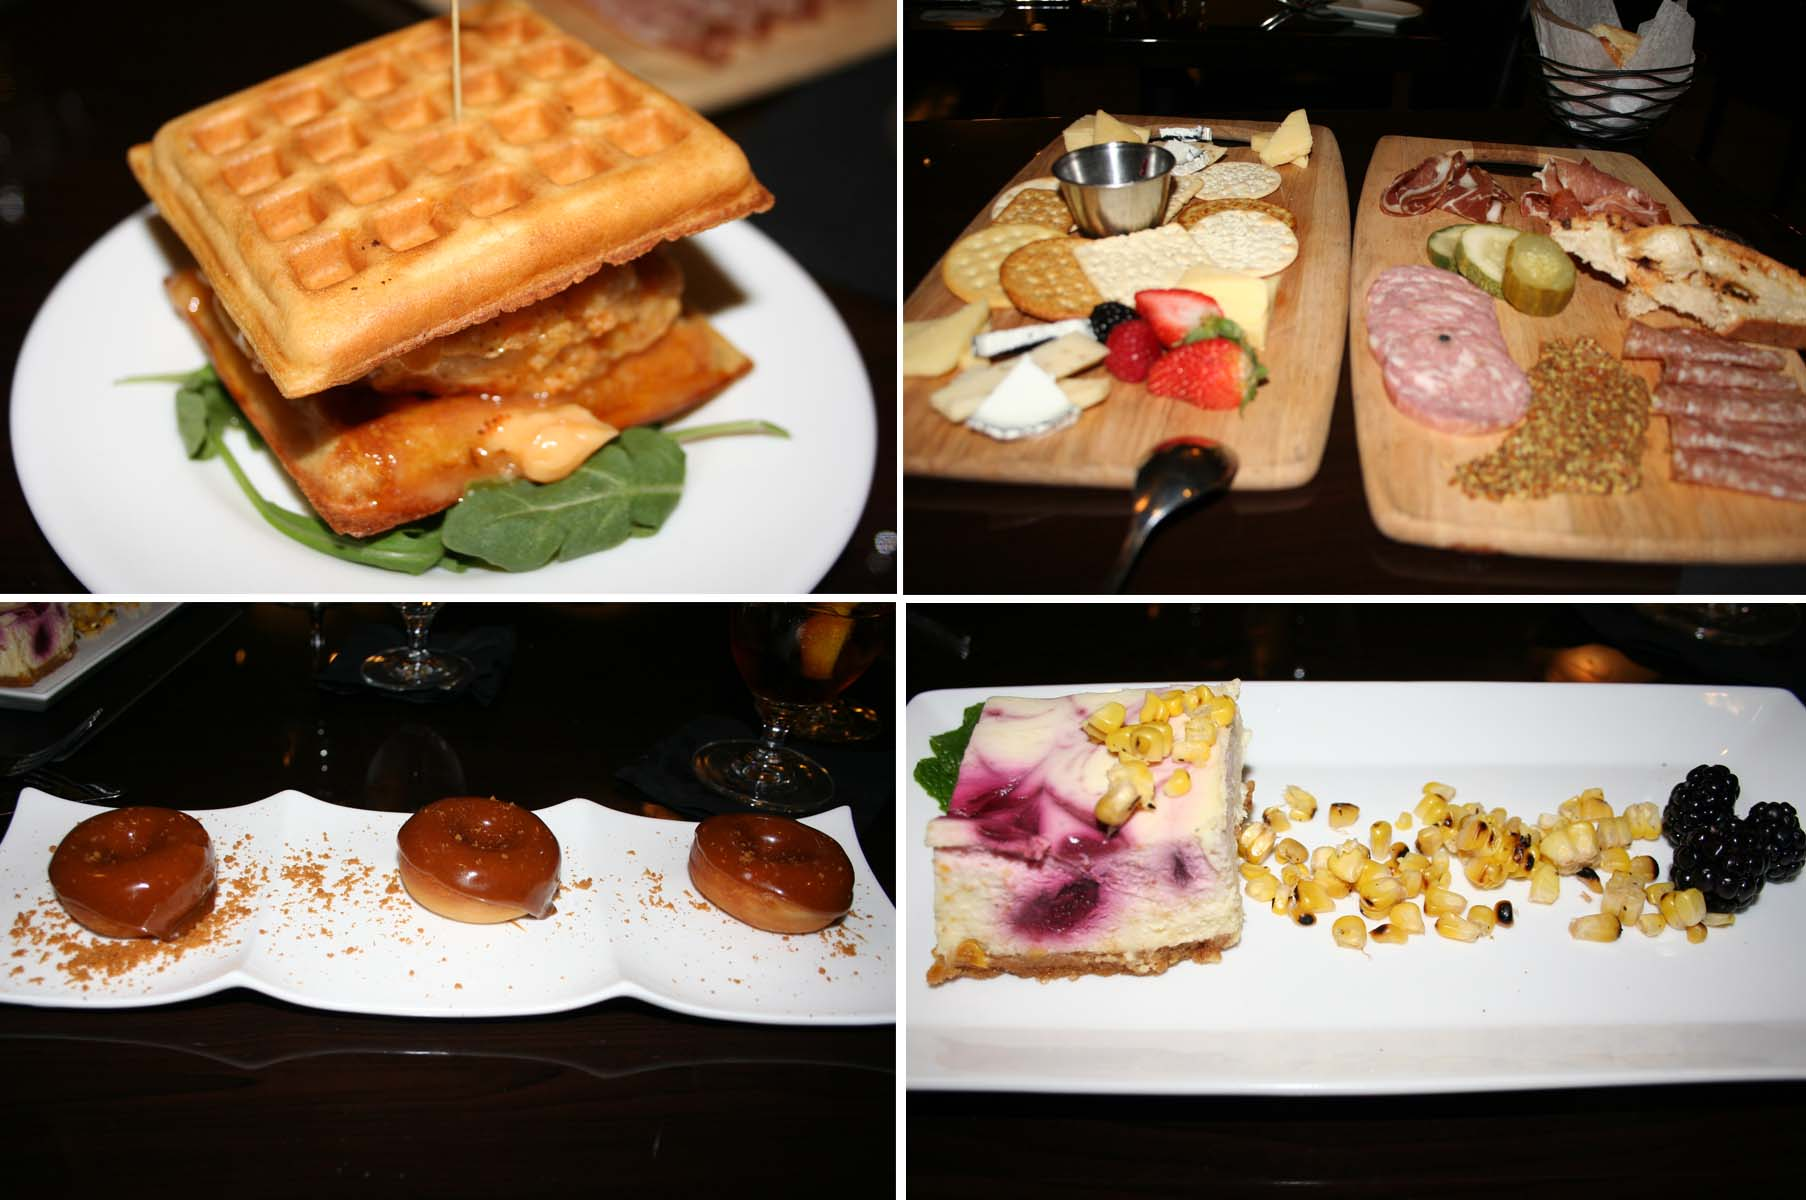 The chicken and waffle sandwich (clockwise from top left) off the happy hour bar menu was the best dish of the meal. Others include the cheese and cracker and carved meat boards, the tasty blackberry and corn cheesecake and fresh doughnuts with European cookie glaze. (Photos: Mark Heckathorn/DC on Heels)